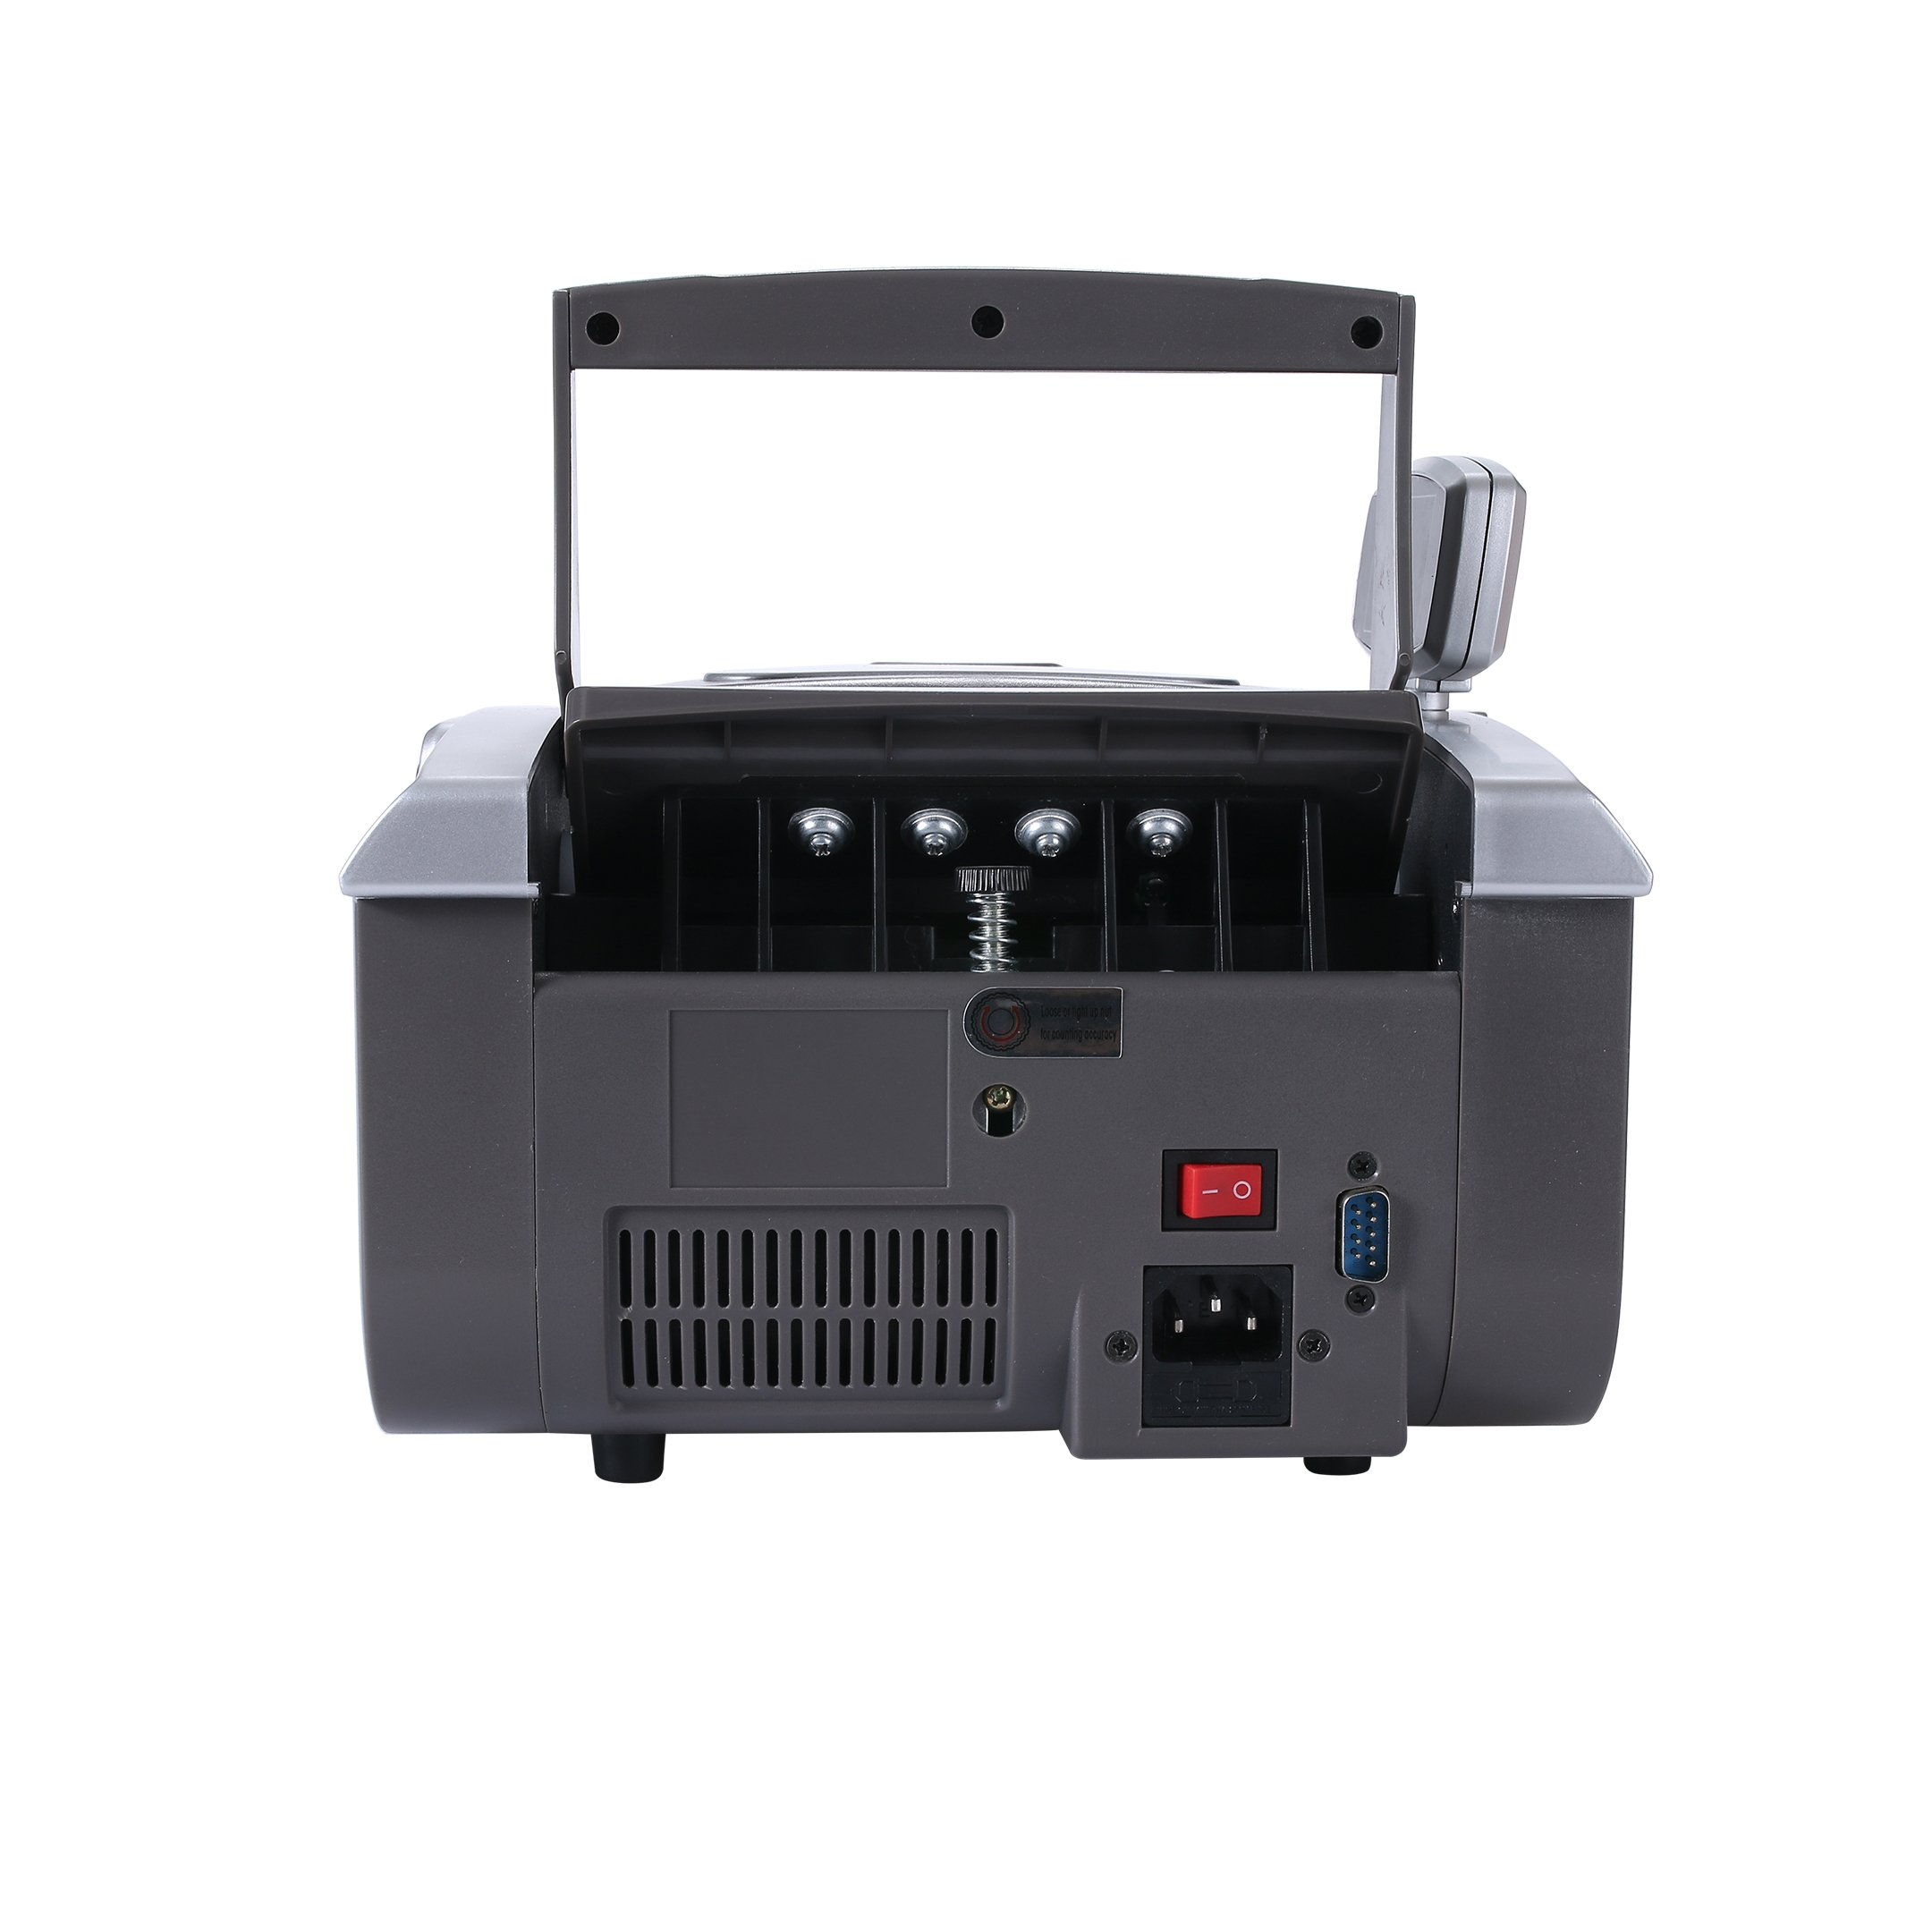 Money Counting LED Display Machine C02 With UV, Magnetic And Infrared Detection